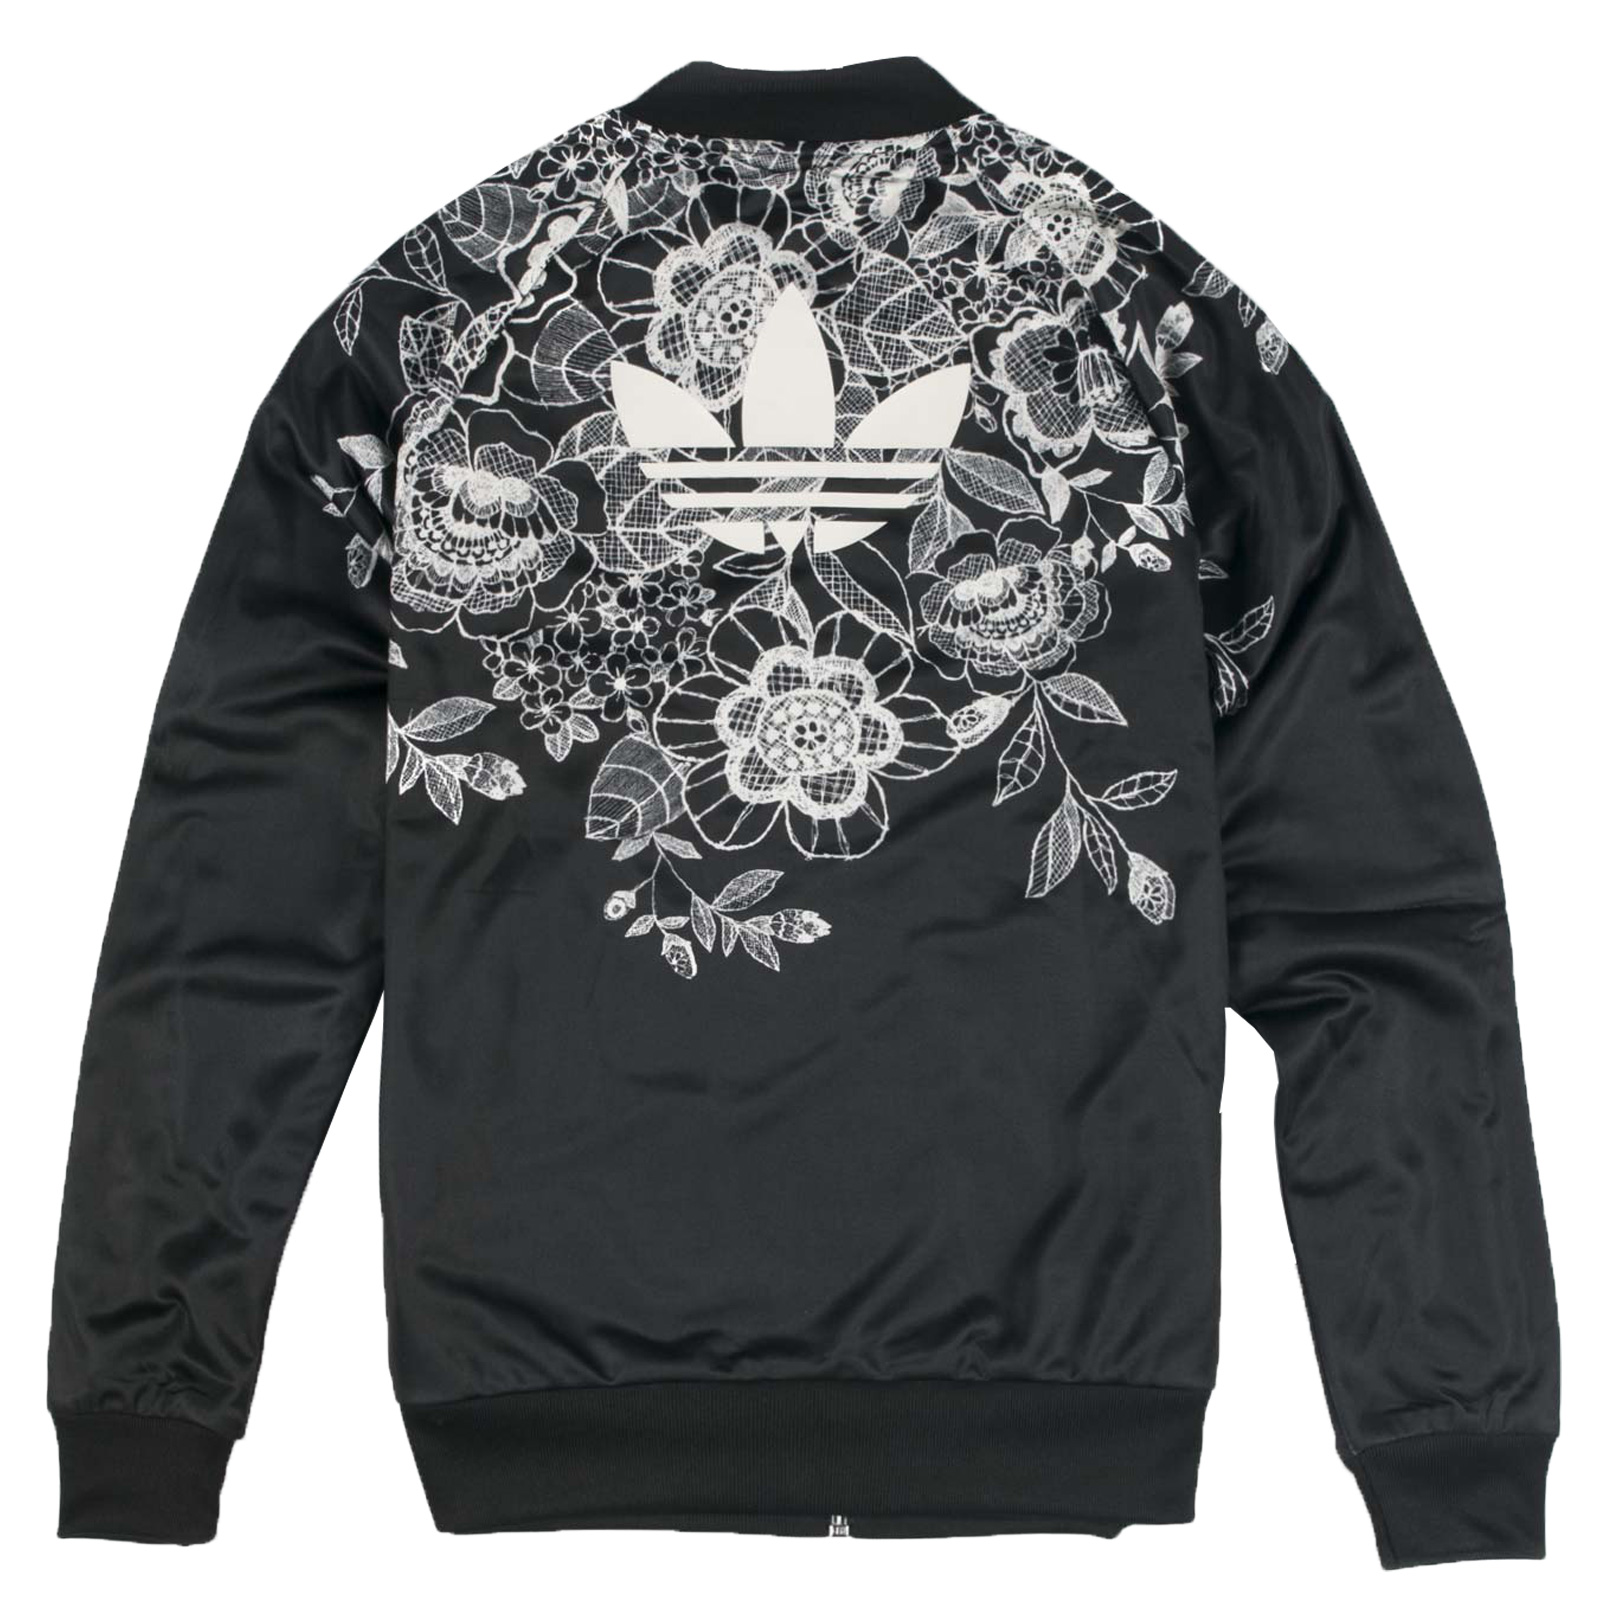 Details about Adidas Originals x The Farm Scenery SST Superstar TT Bomber Jacket Black Flowers show original title